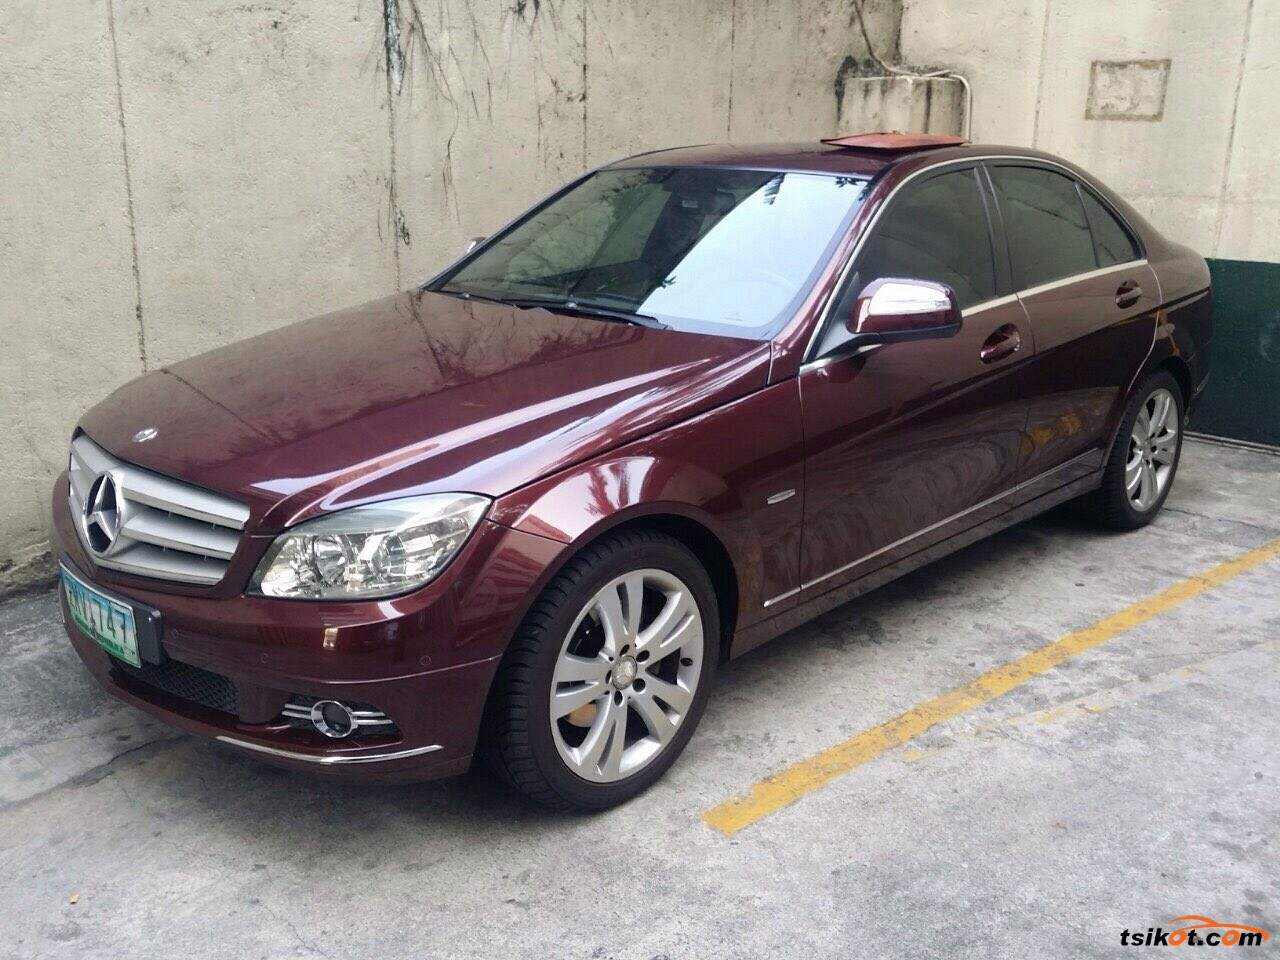 Mercedes benz c class 2008 car for sale metro manila for Mercedes benz c class 2008 for sale